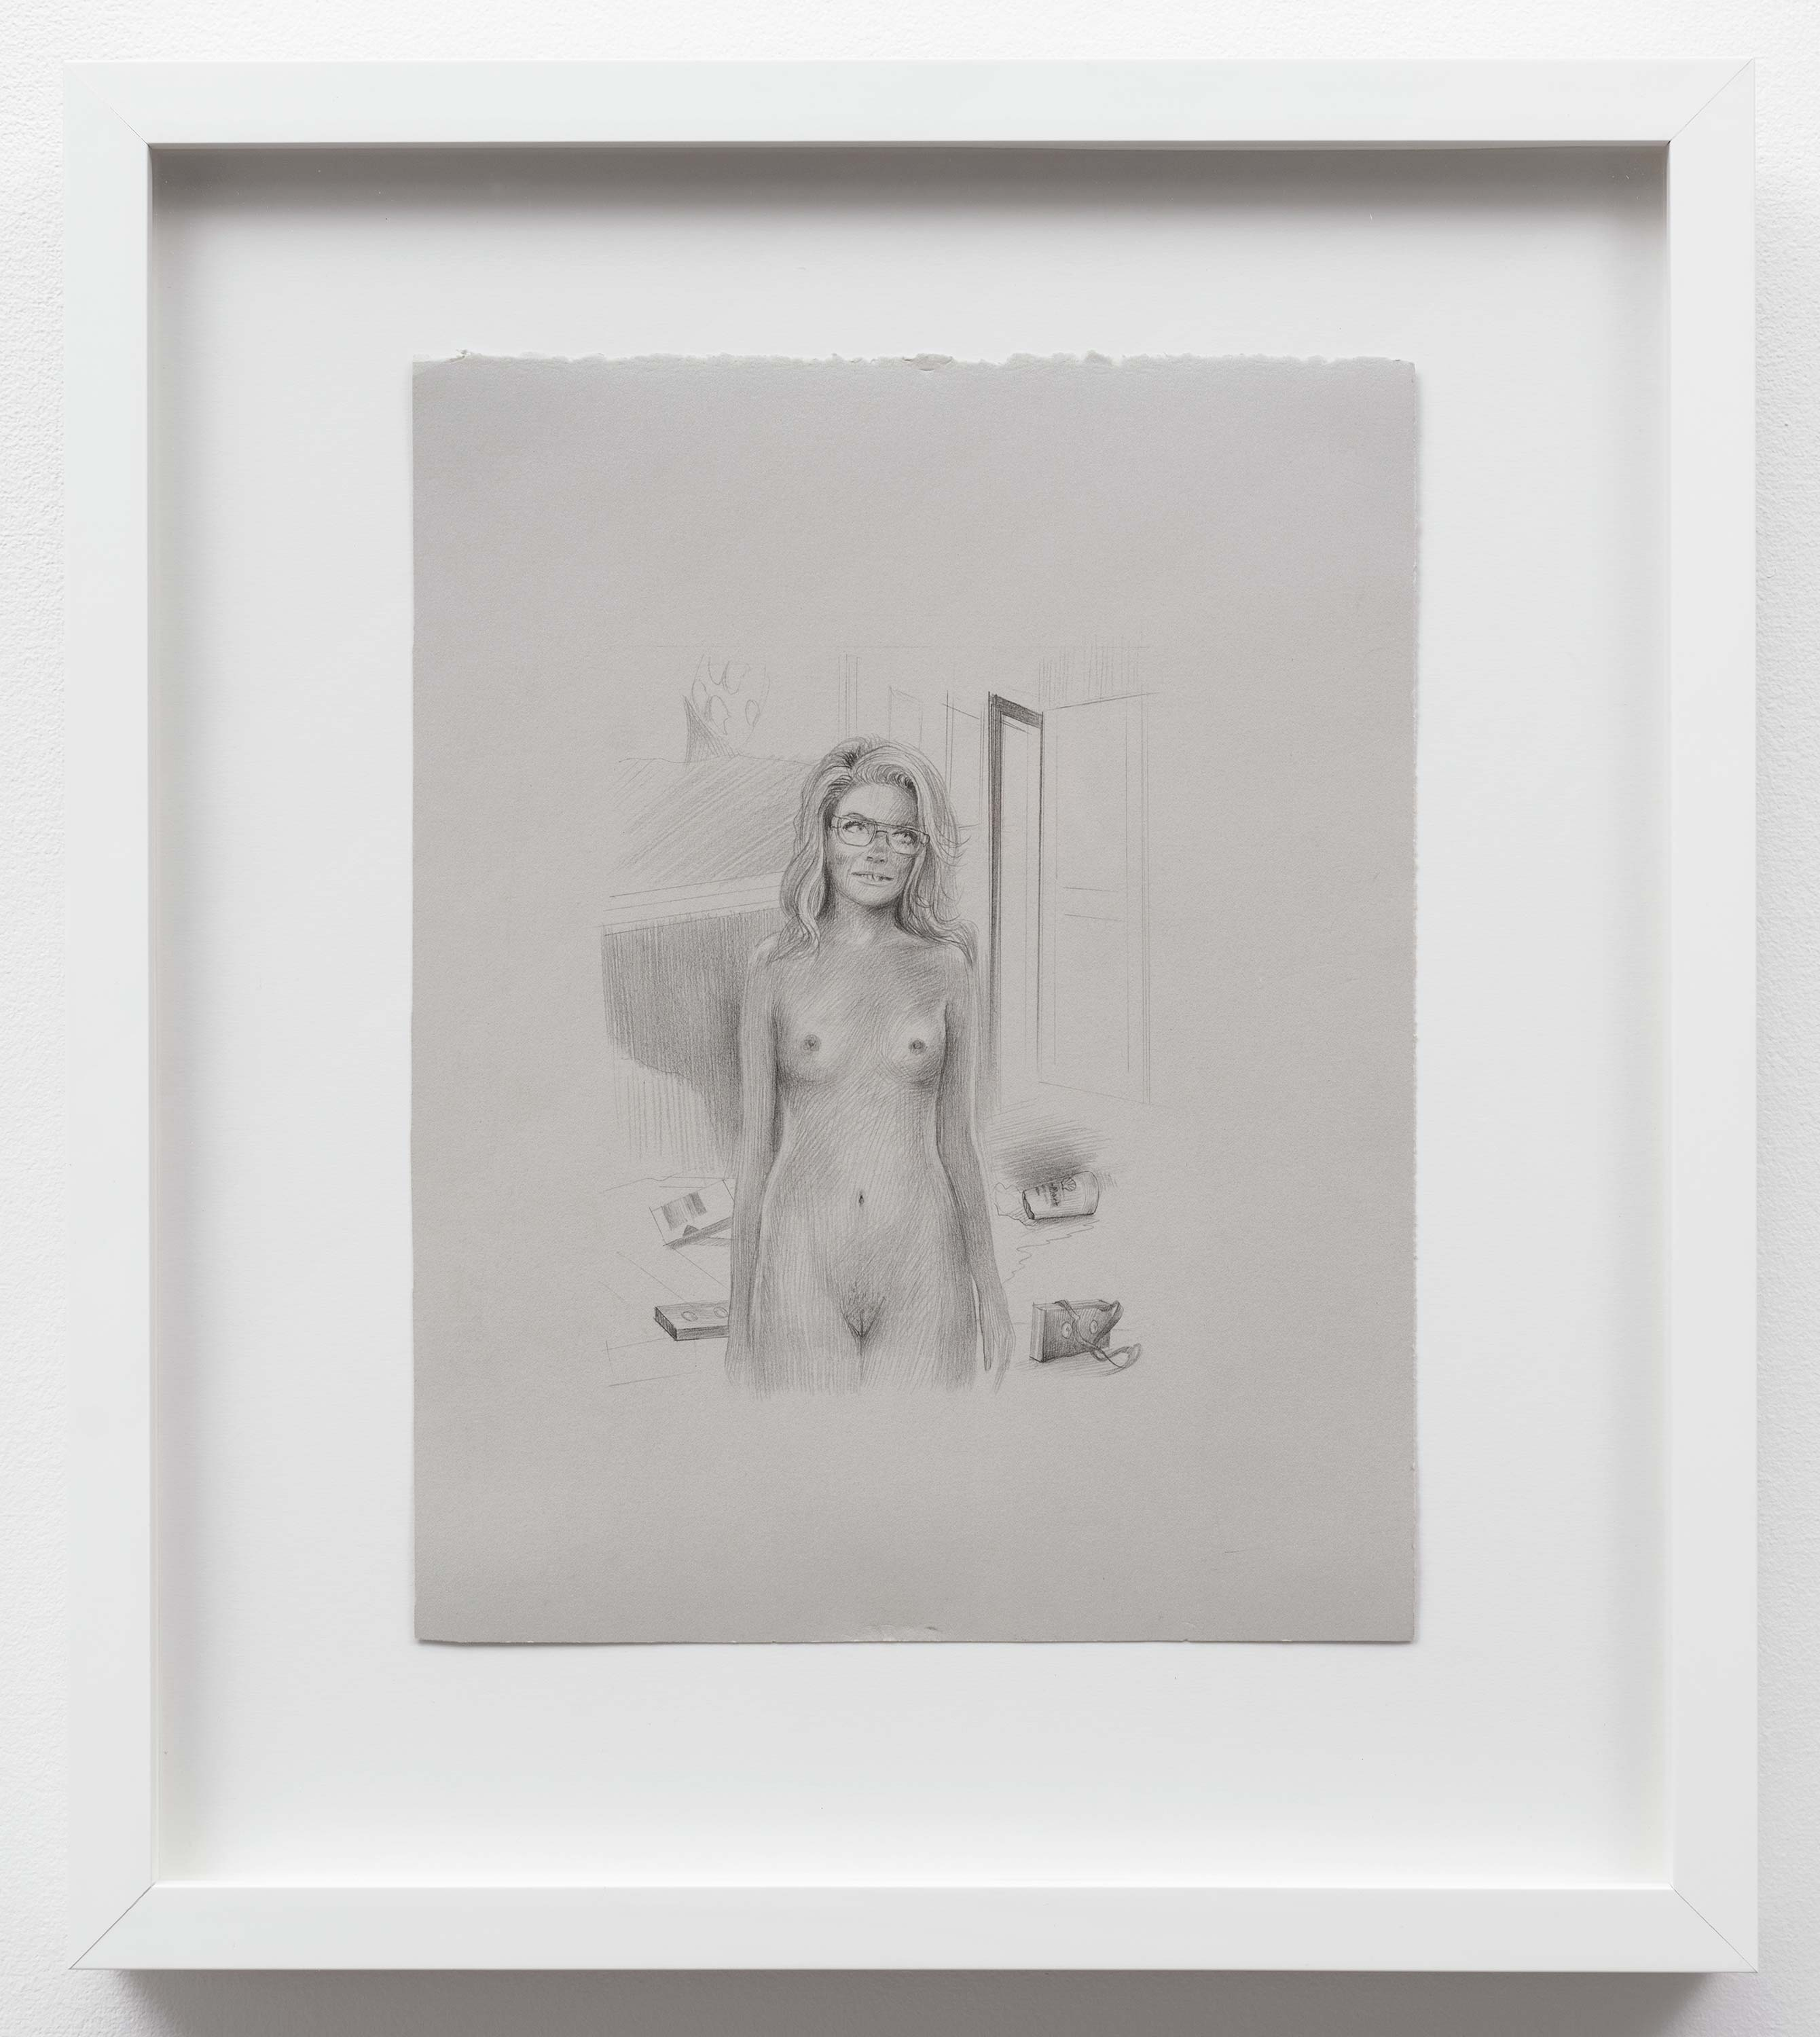 Brandi Twilley<br>Naked in the Living Room with Glasses<br>2014<br>Graphite on gray paper<br>9 x 11.5 (23 x 29 cm)